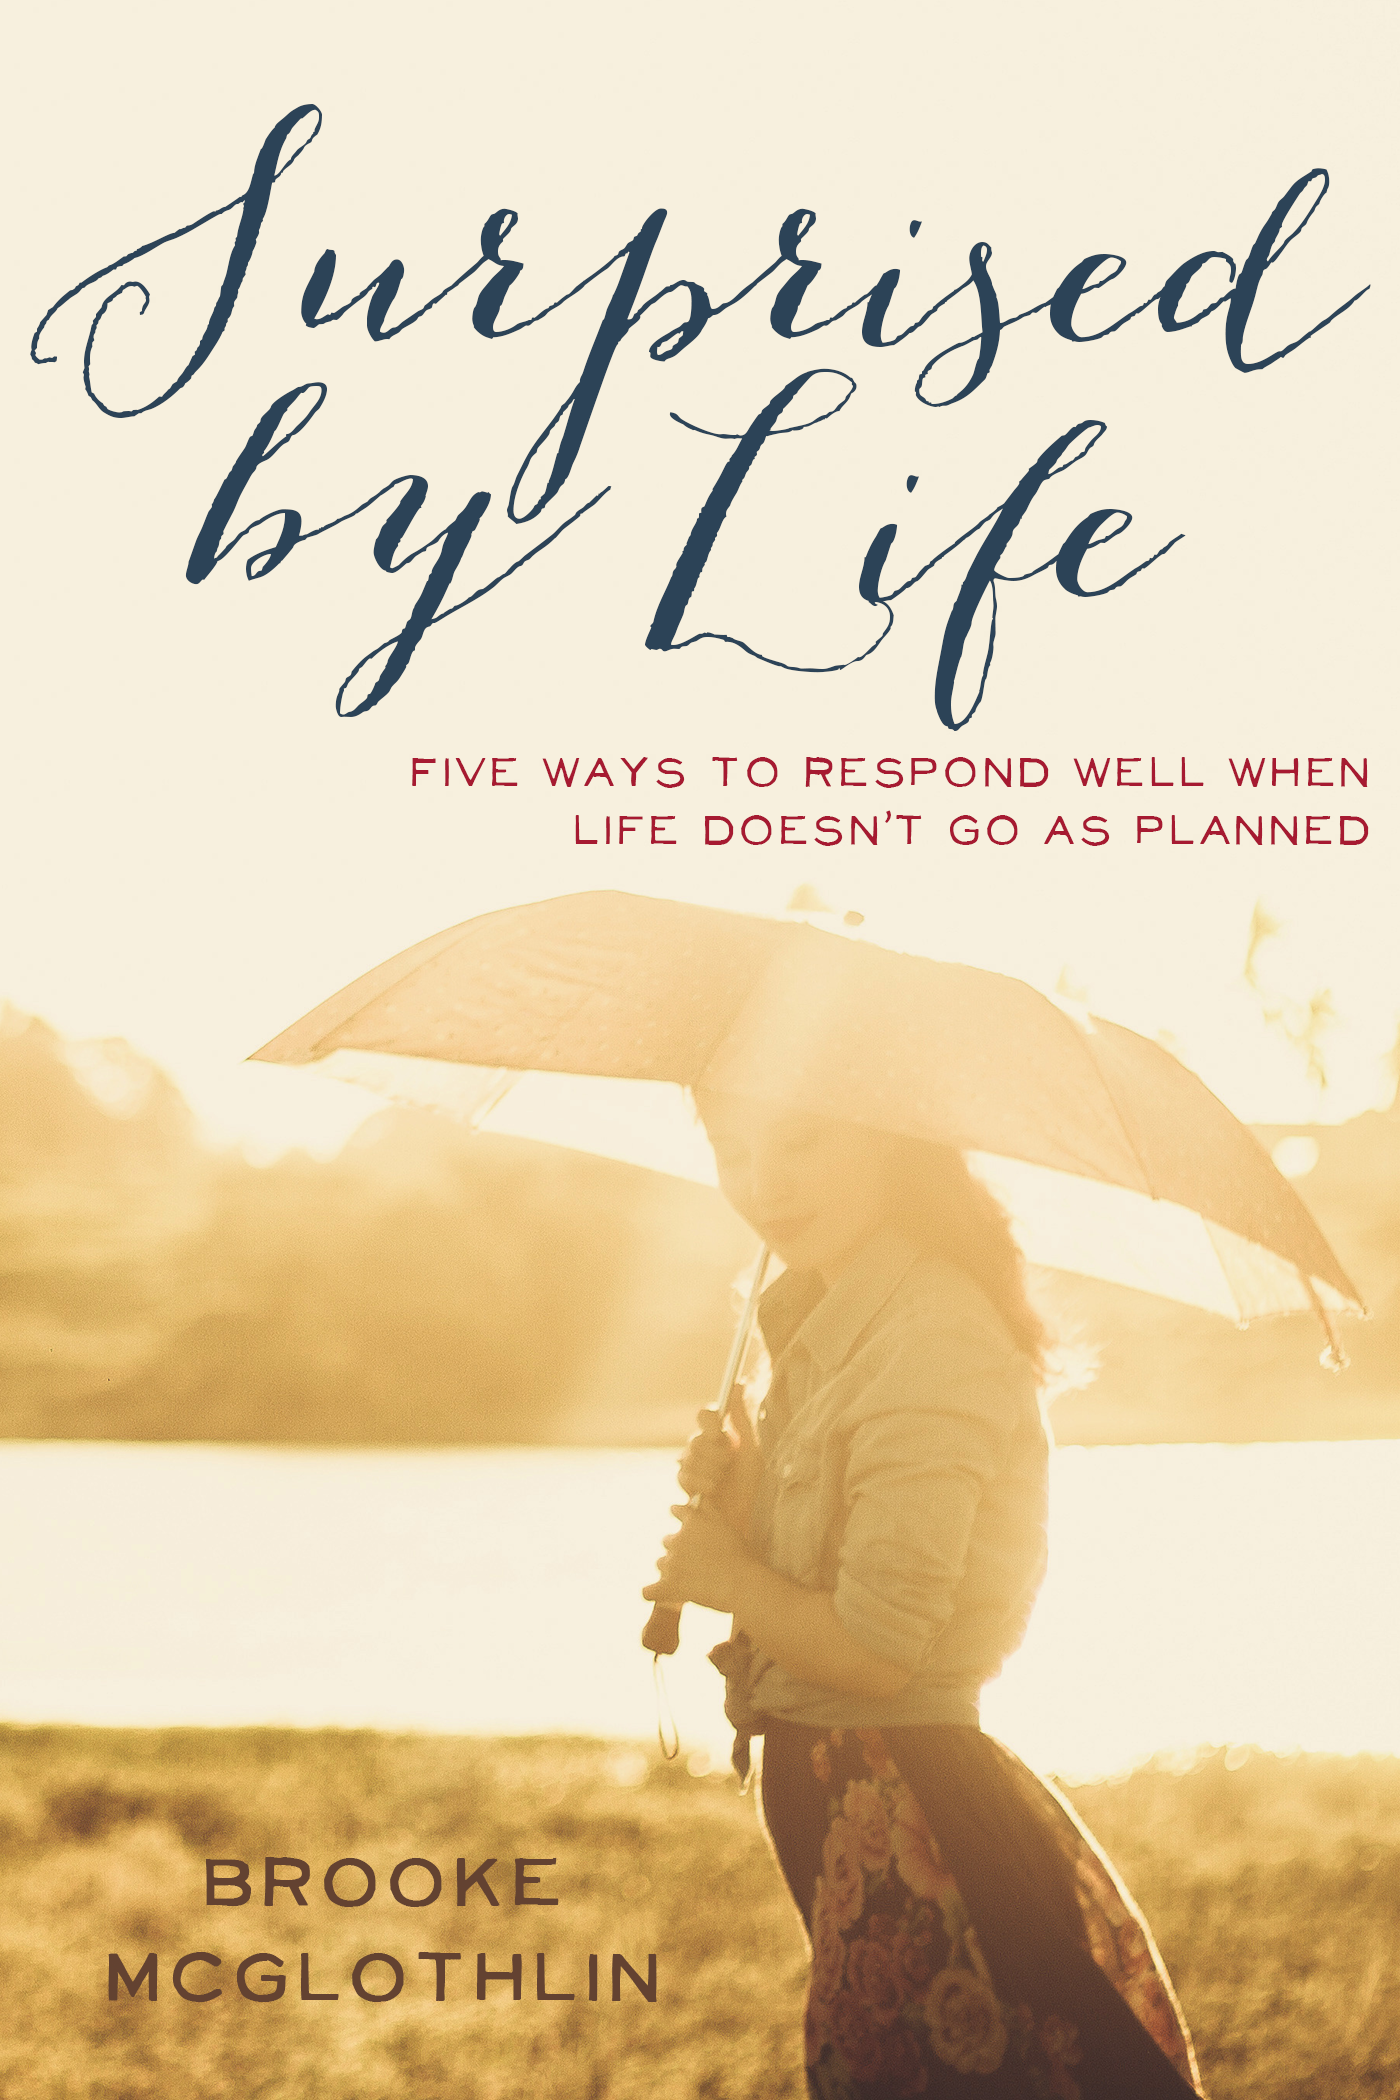 Five Ways to Respond Well When Life Doesn't Go as Planned (a free resource from Brooke McGlothlin)